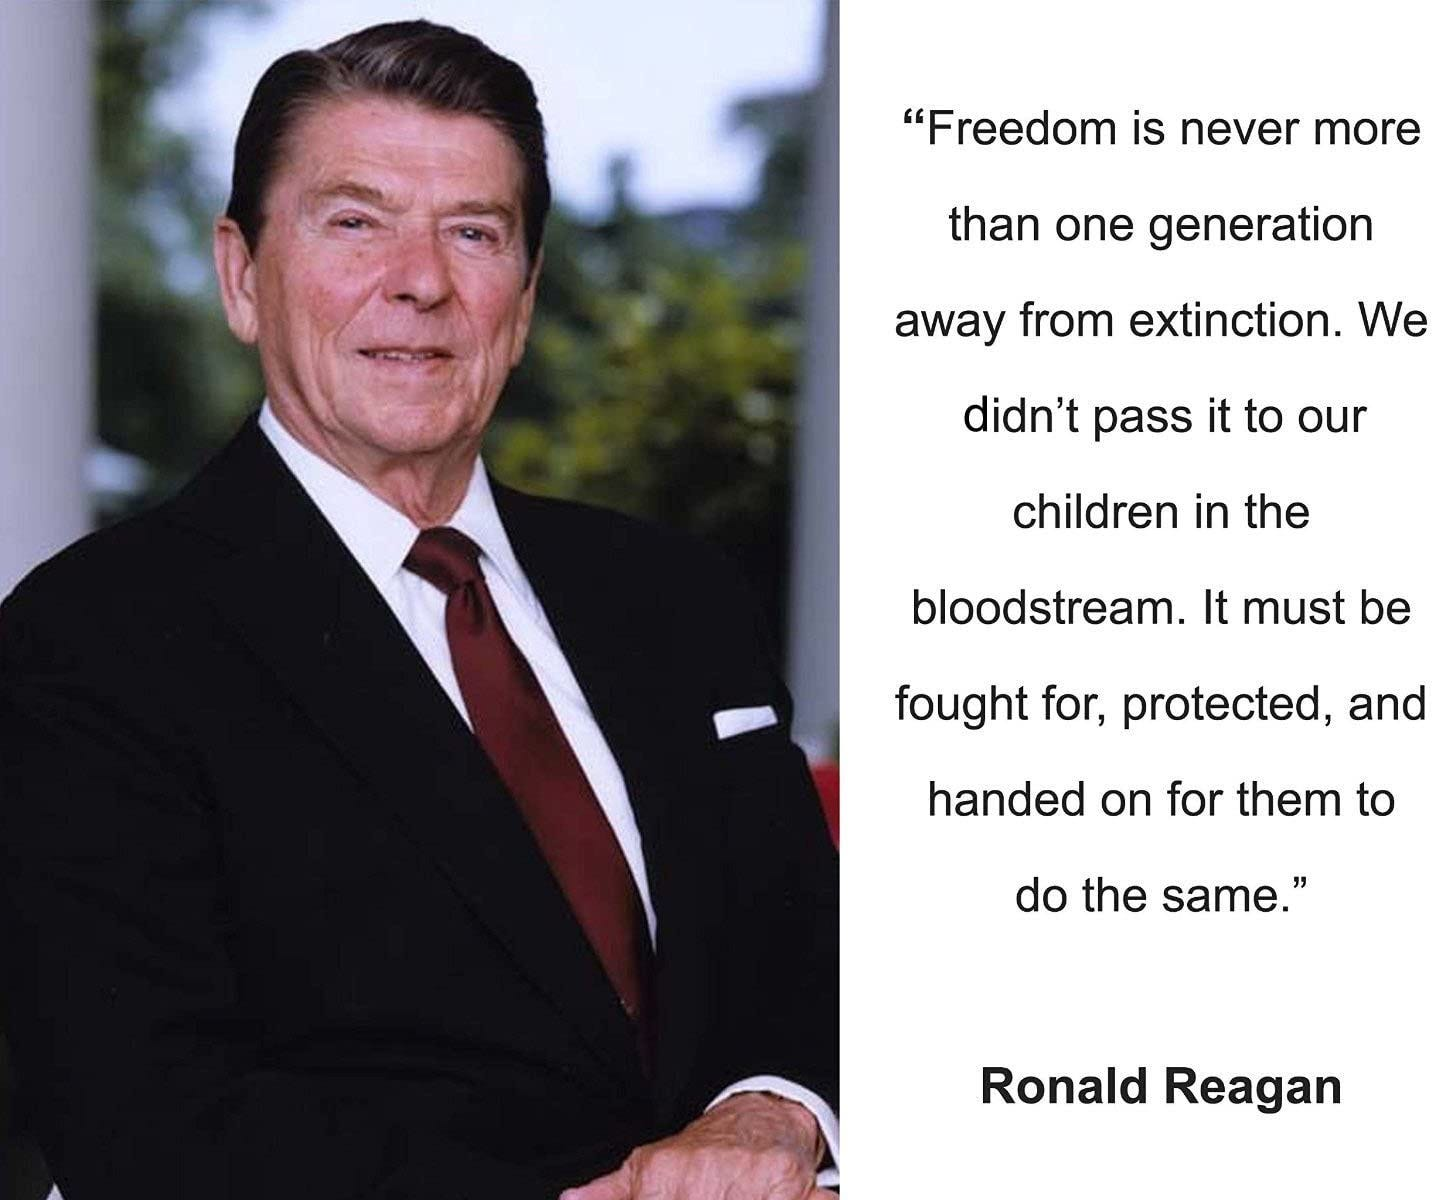 Amazon.com: Ronald Reagan Freedom is Never Quote 8x10 Photo: Photographs